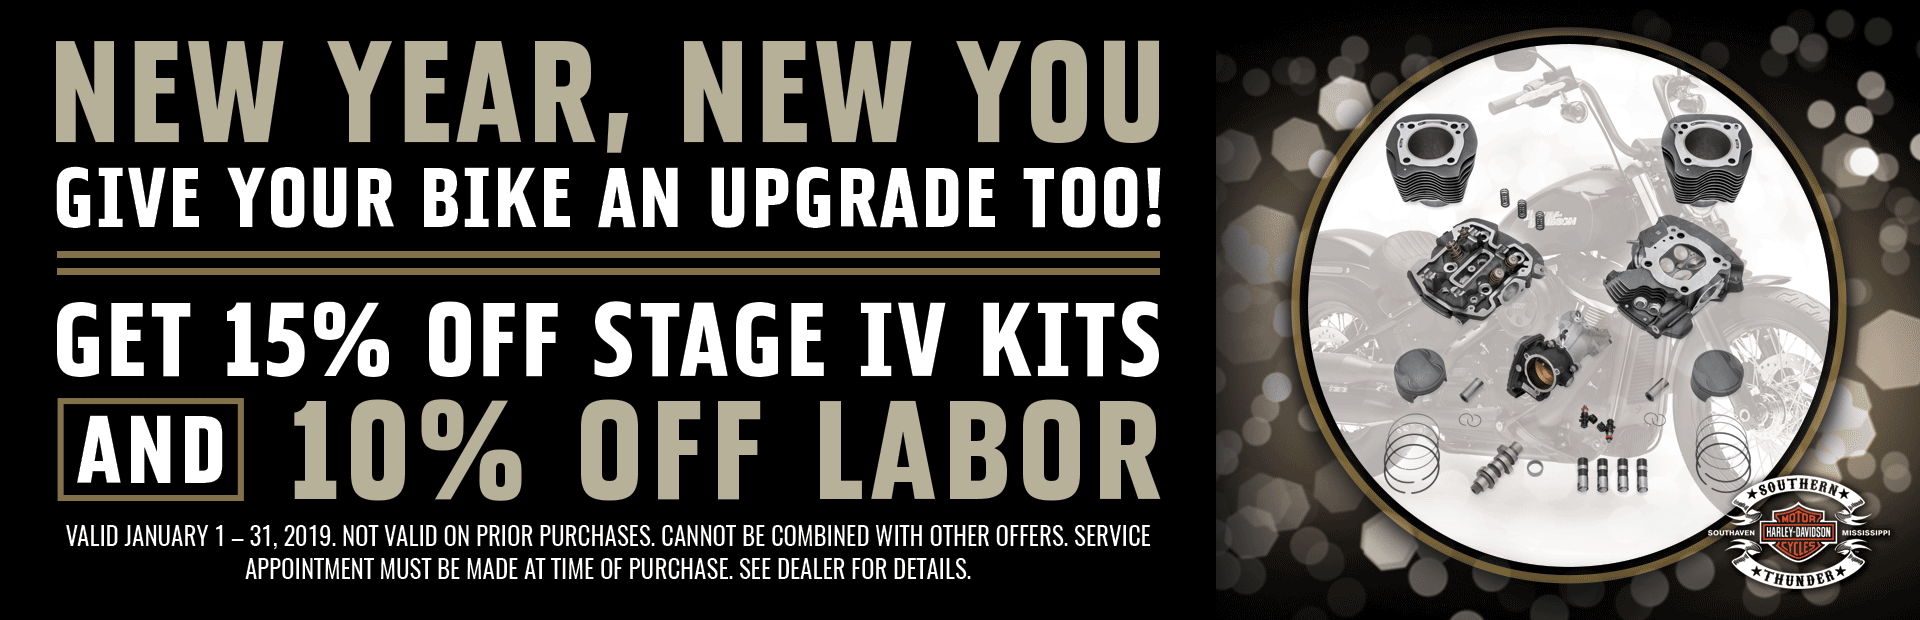 15% off Stage IV Kits